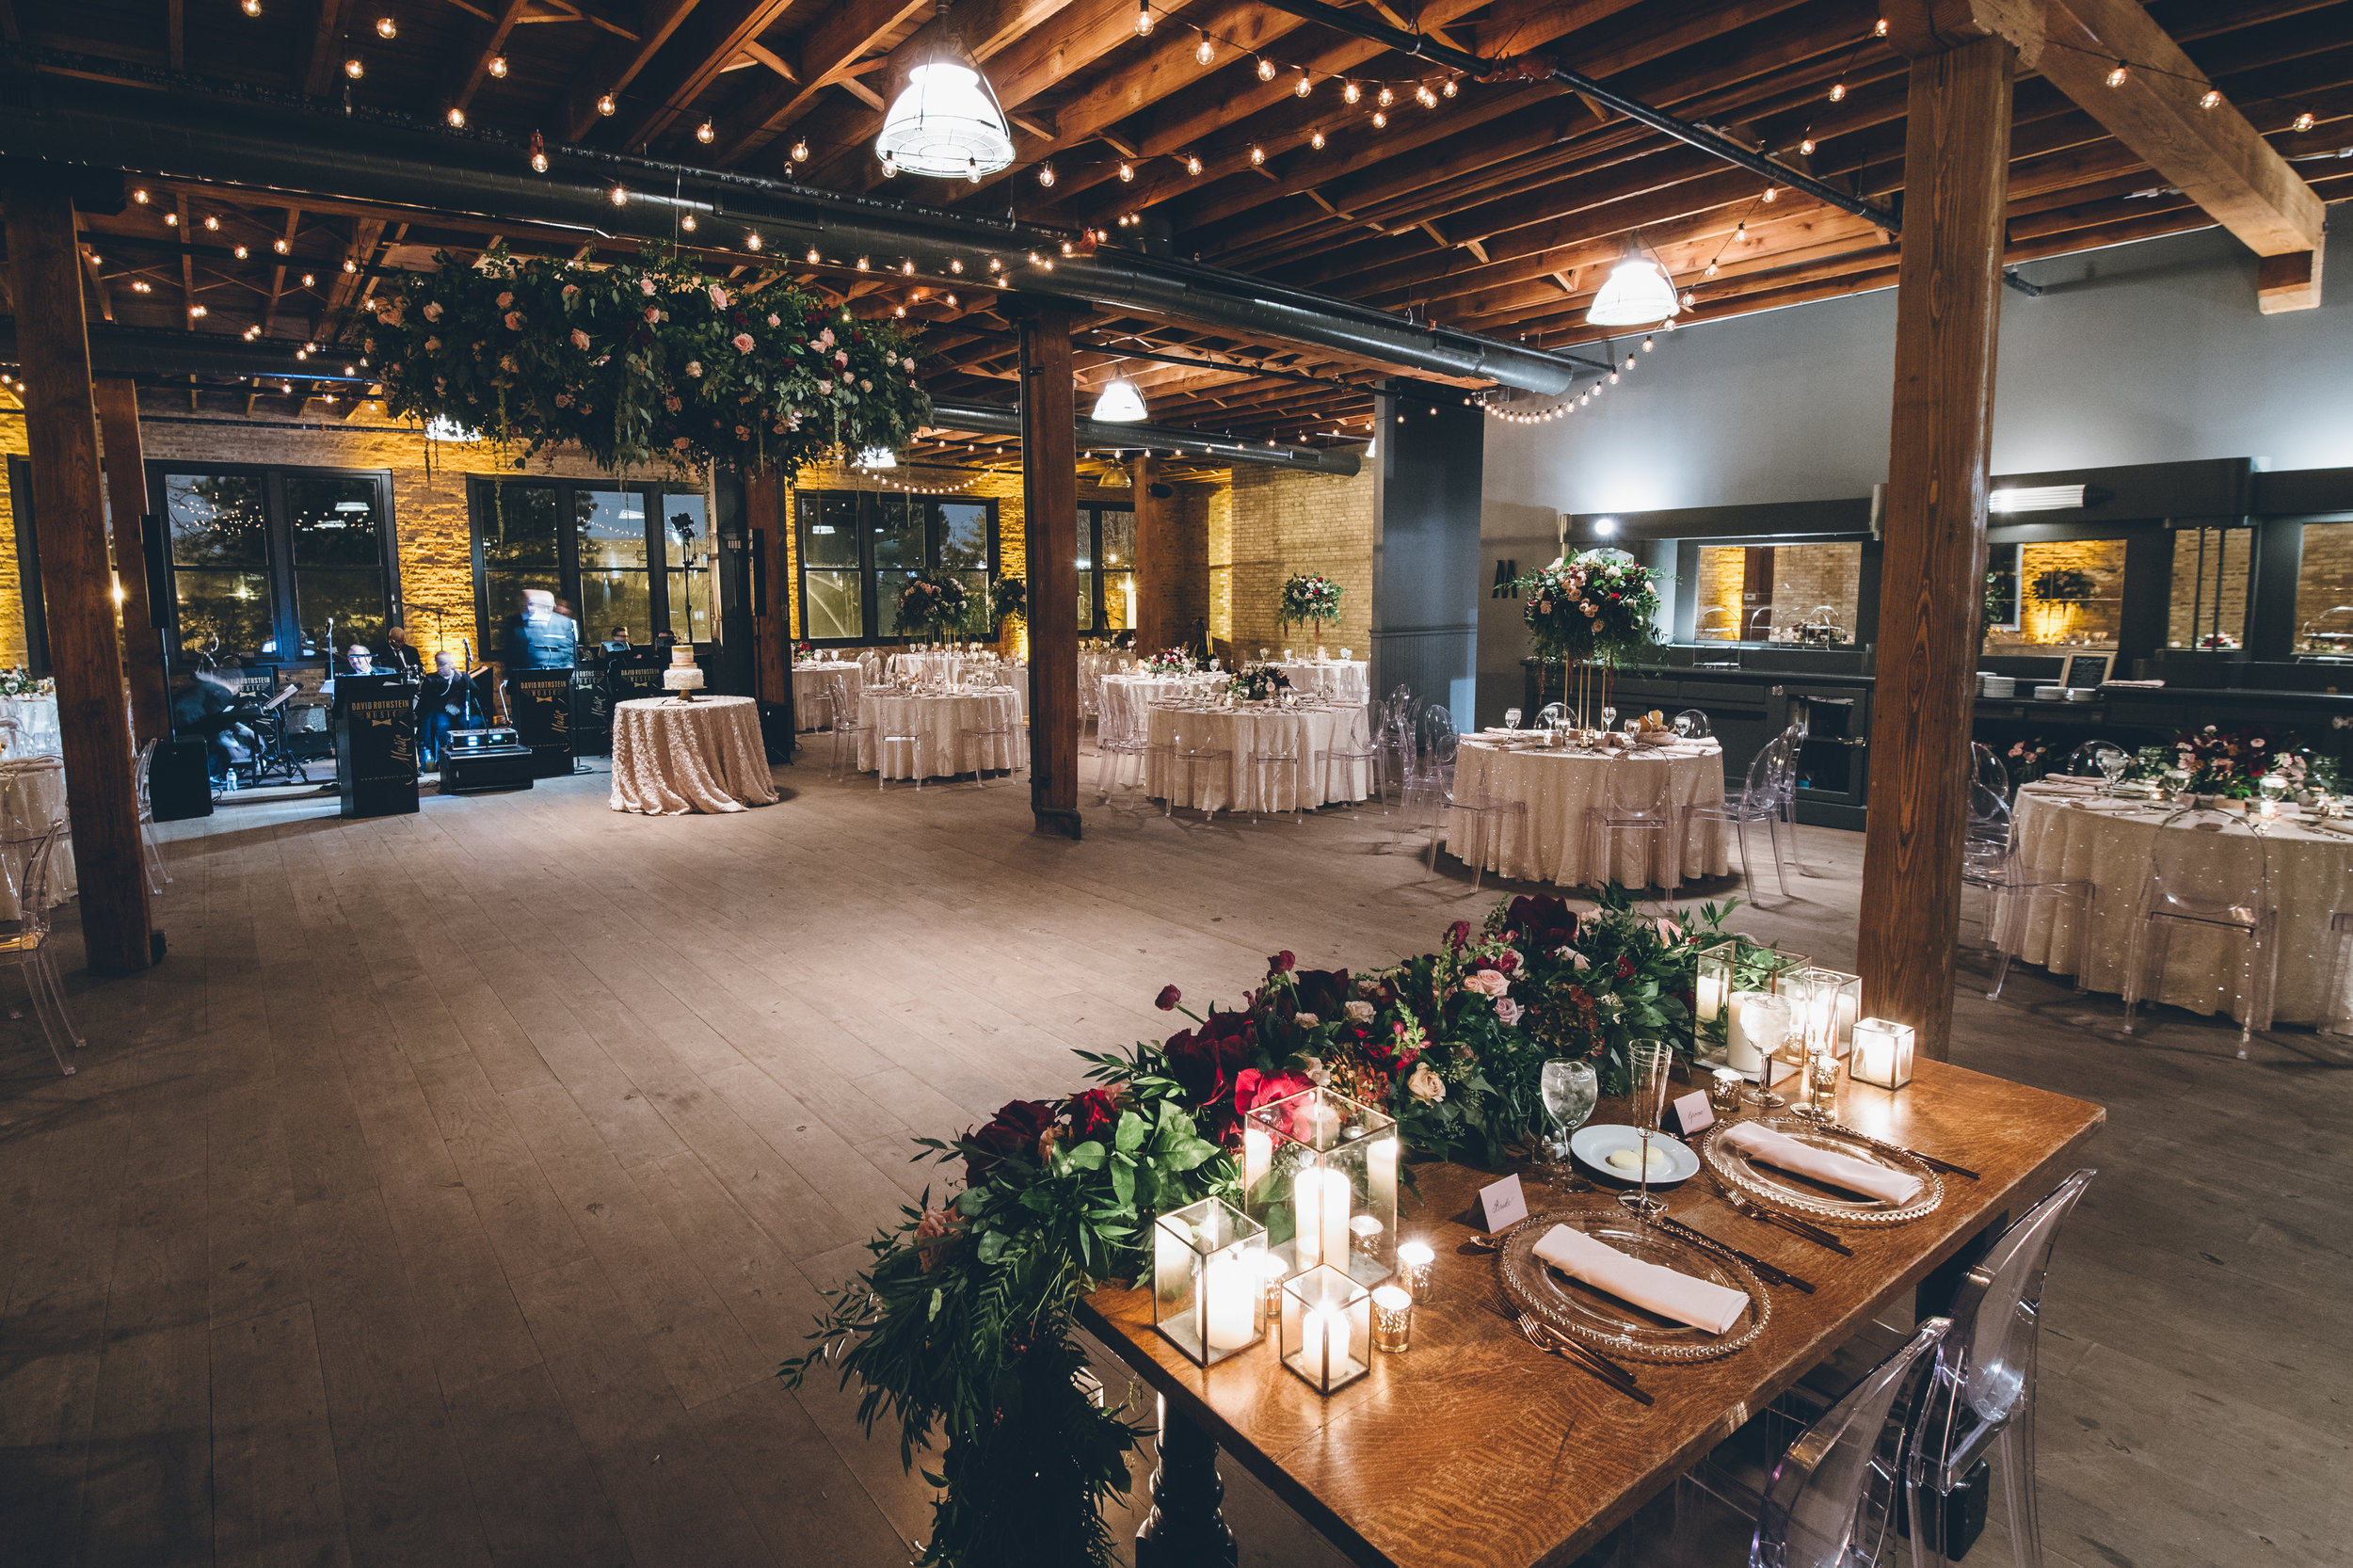 denver_colorado_wedding_reception_rustic_flowers.jpg